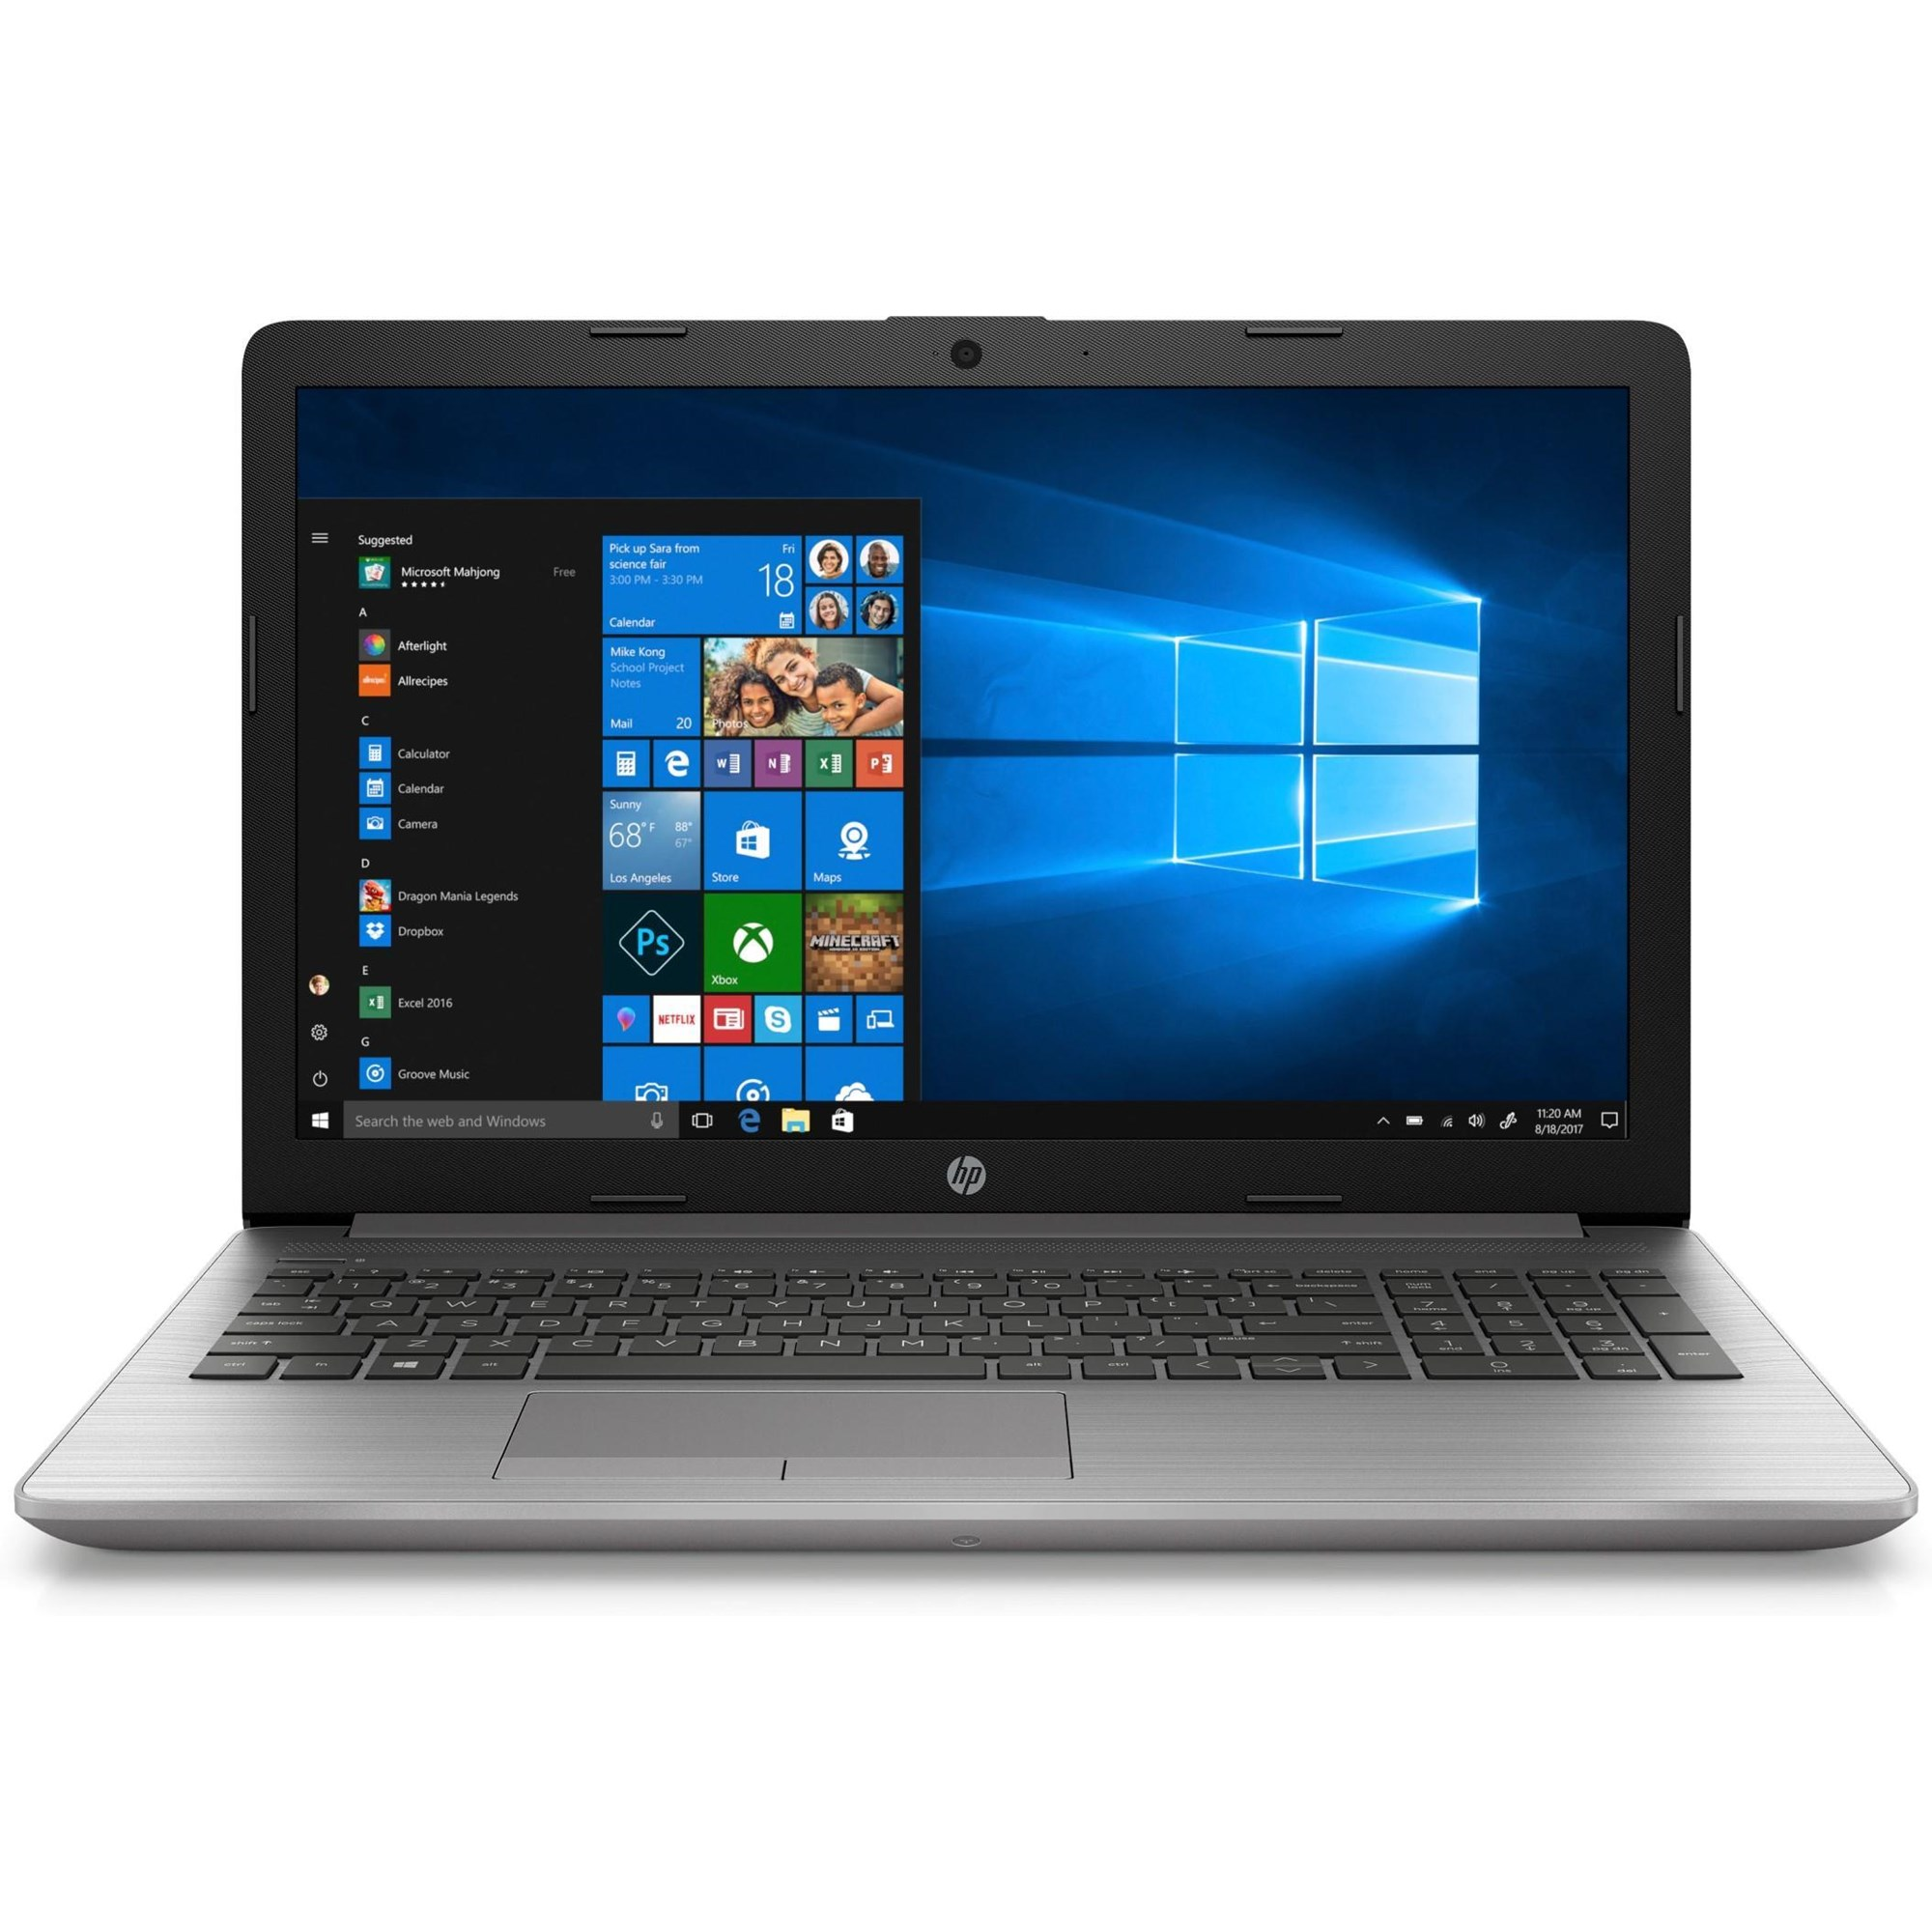 hp 250 g7 laptop 15 6 inch 1366 x 768 intel core i5 8265u 8gb 1tb hdd intel uhd 620 bluetooth microsoft windows 10 home 6bp13ea abu